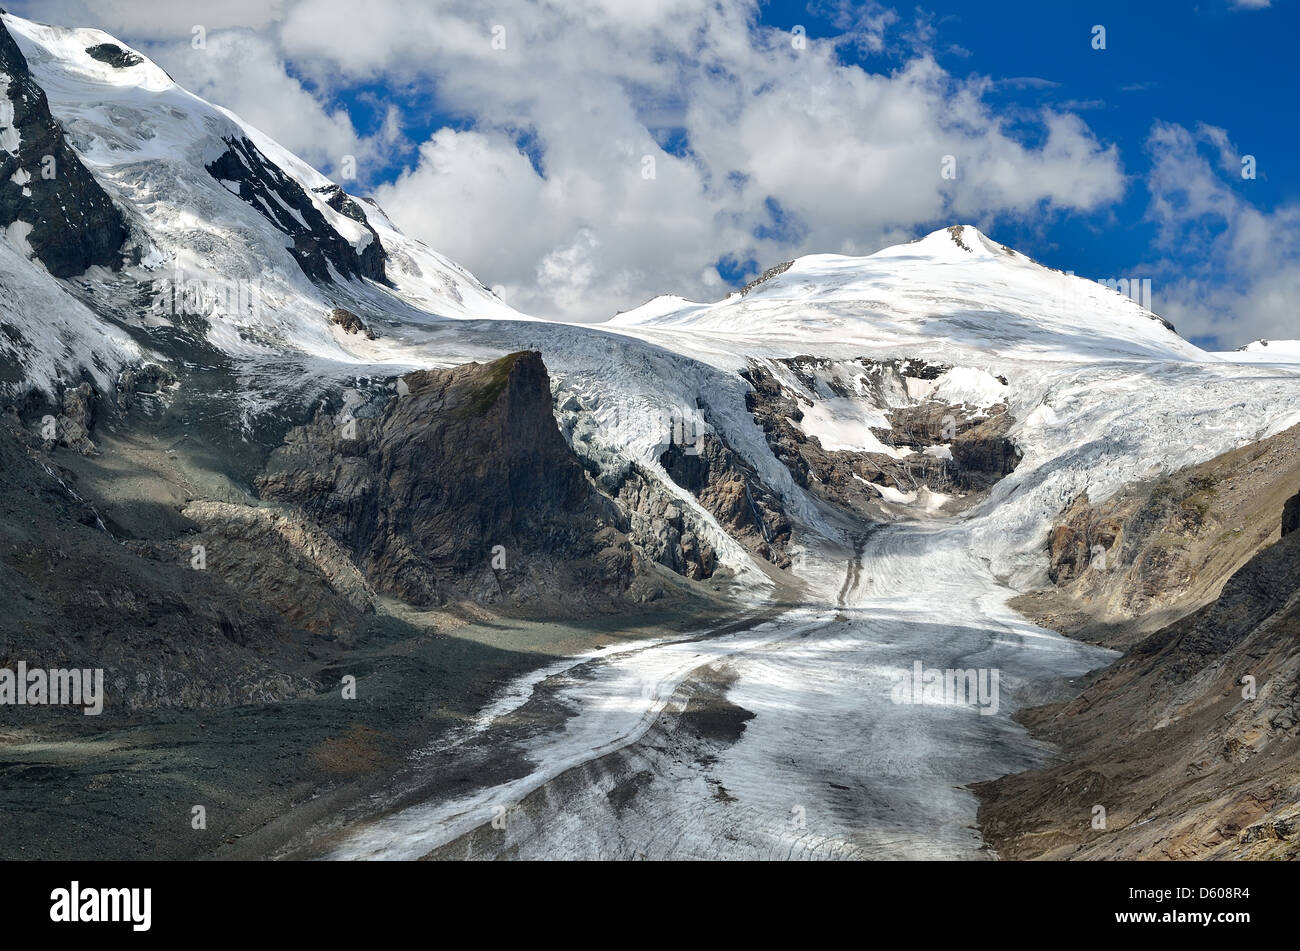 The Pasterze, Austria's biggest glacier, lies at the Grossglockner's foot (3798 m height) - Stock Image